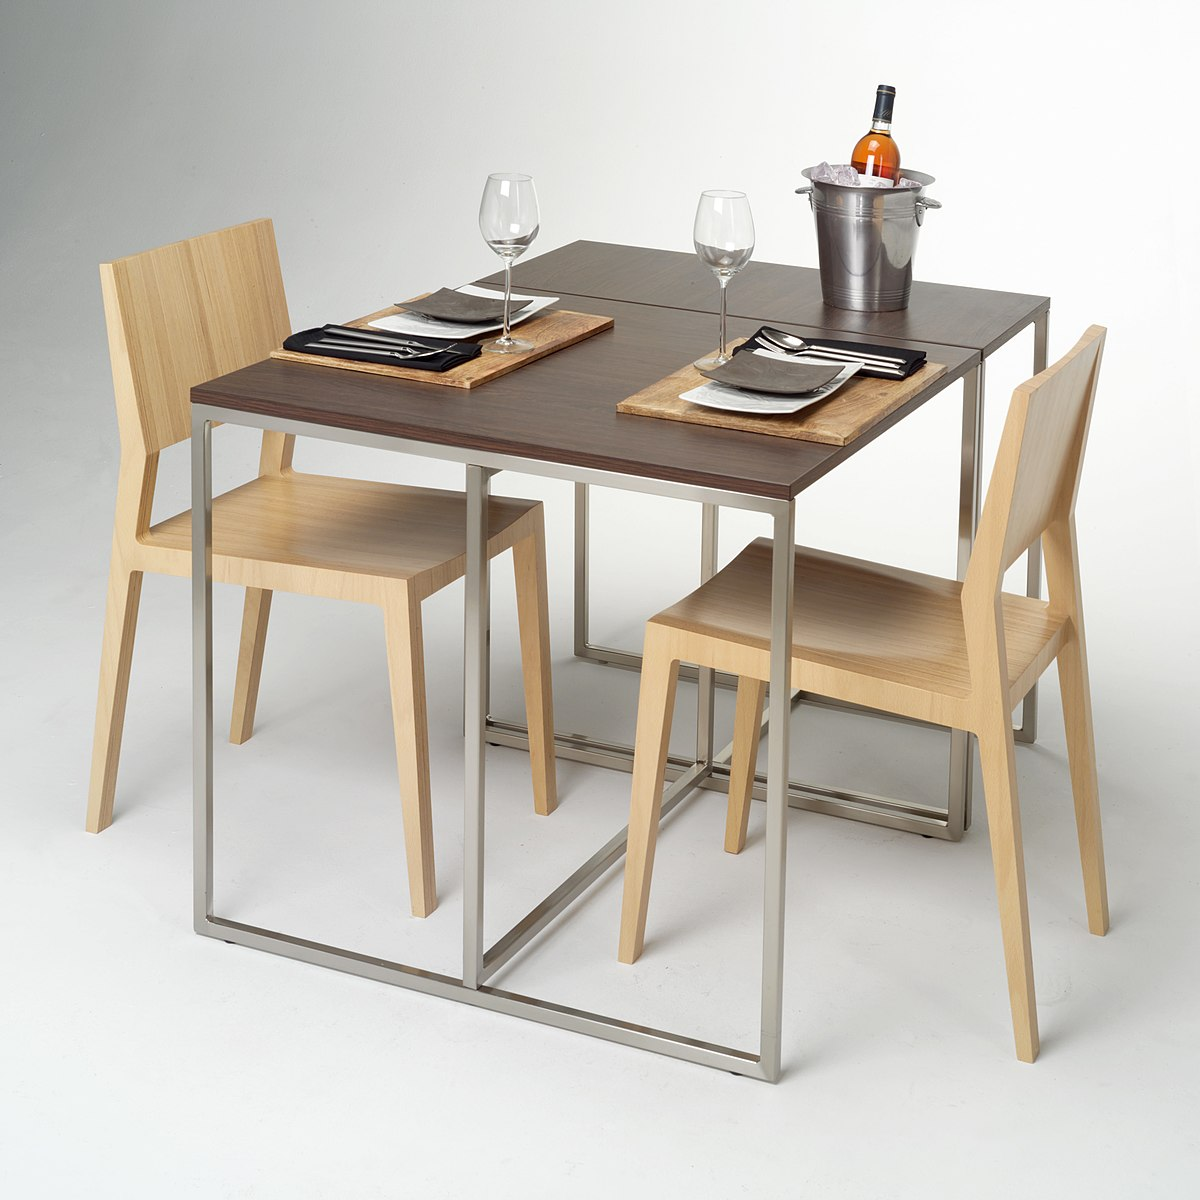 Furniture wikipedia for Dining room table for 2